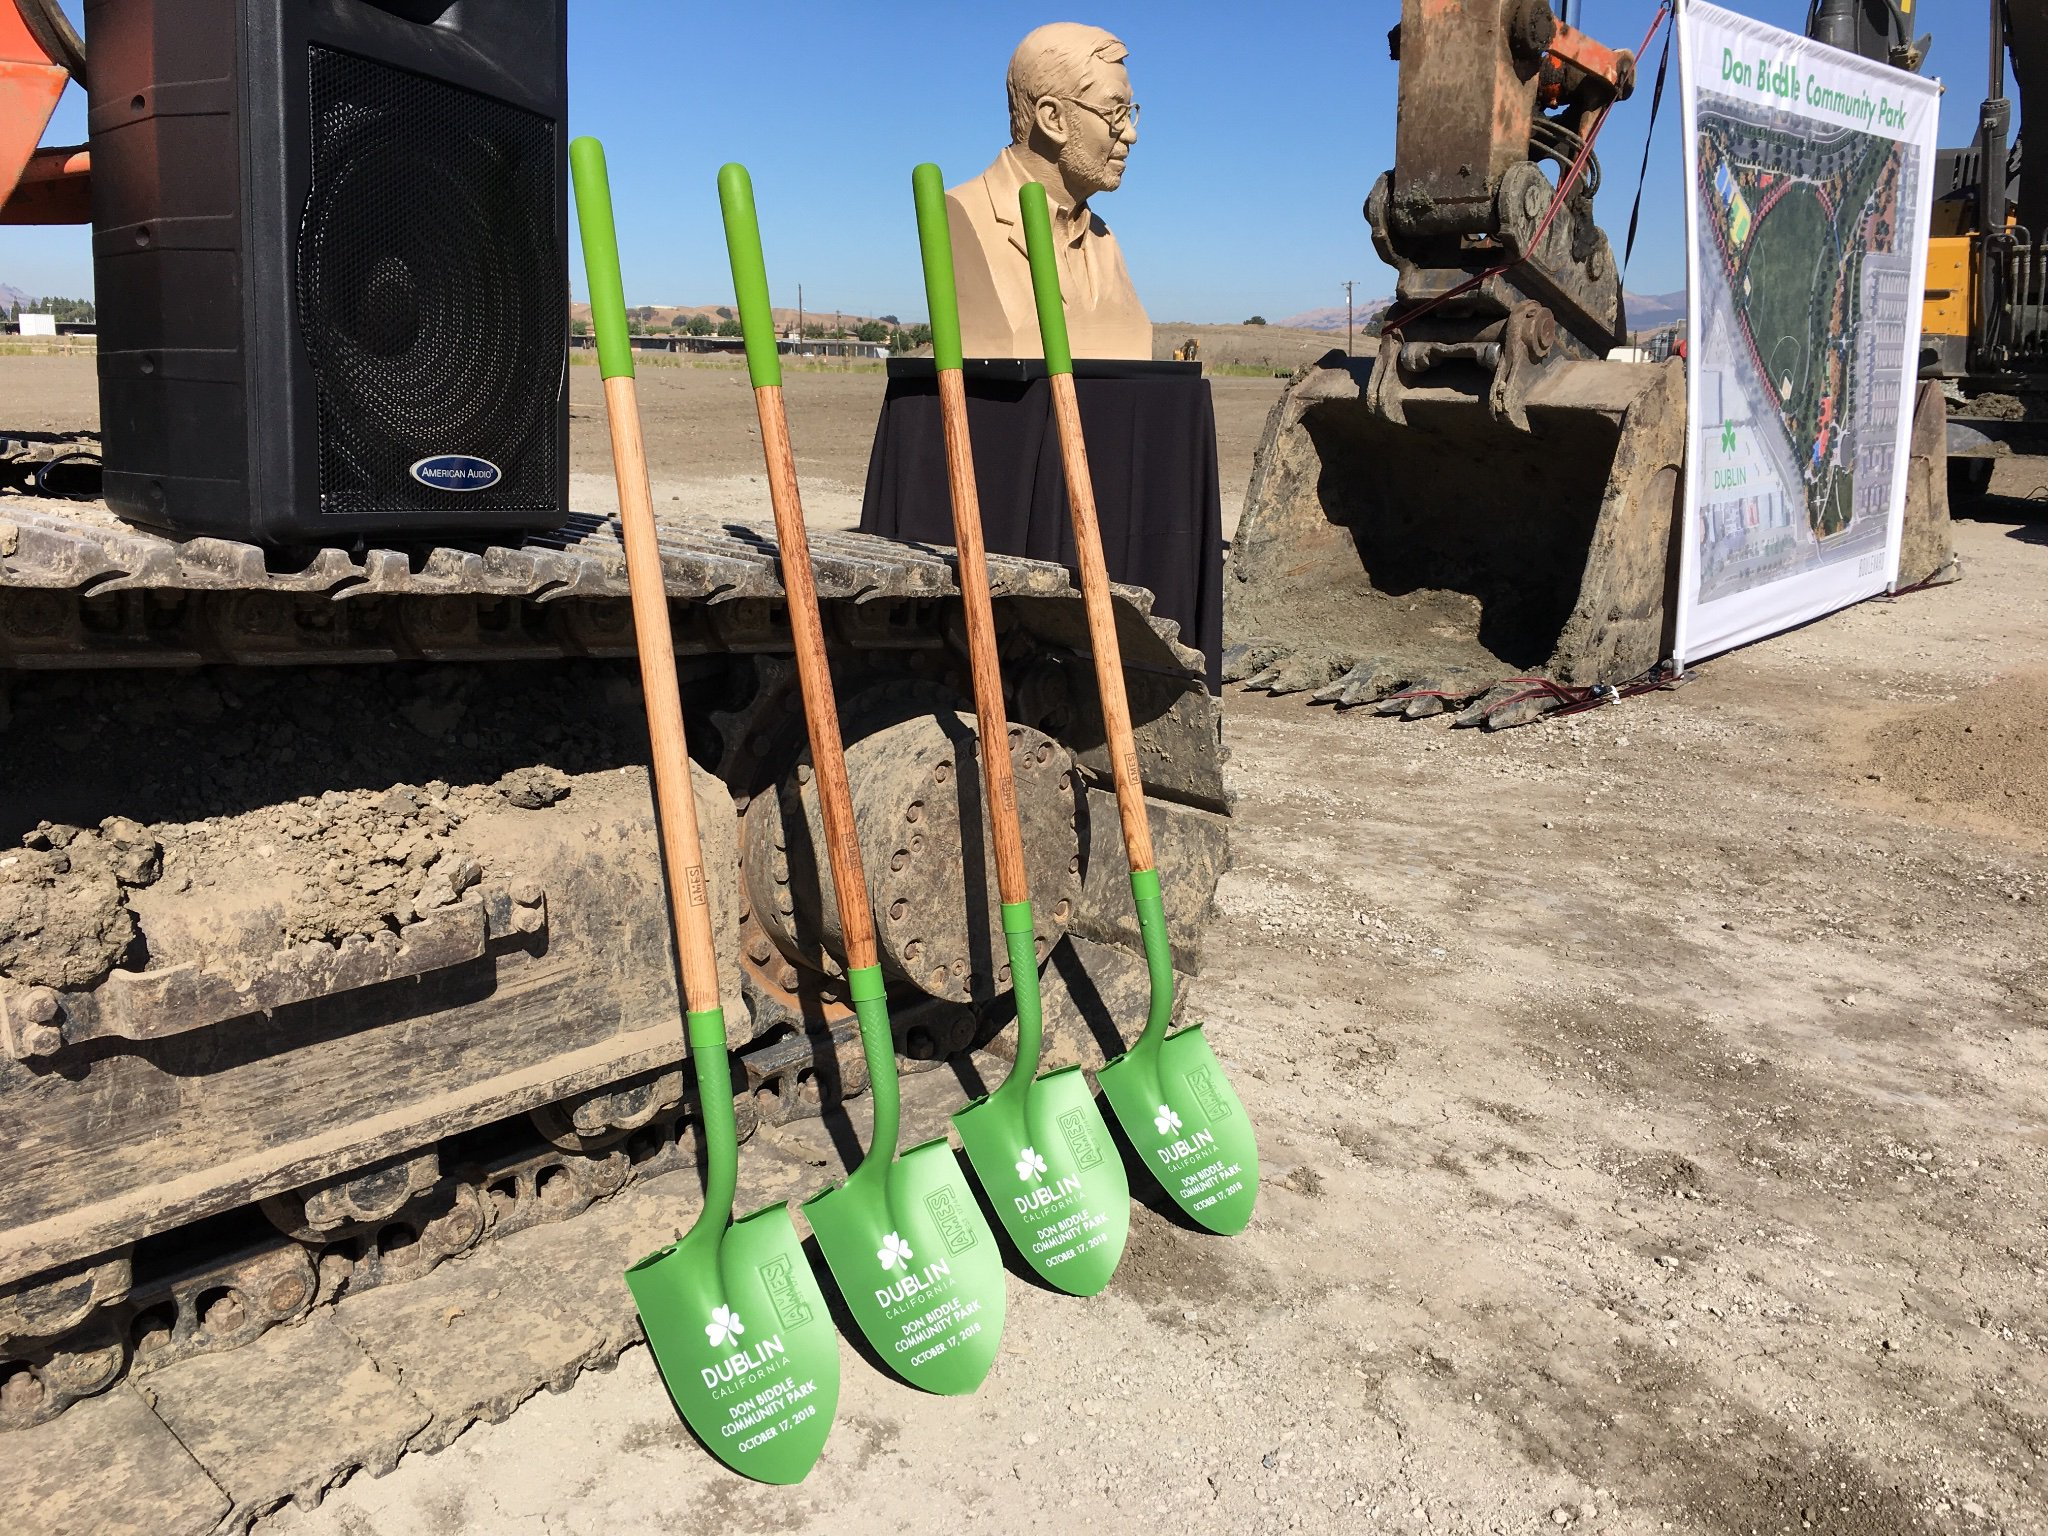 City Of Dublin On Twitter The City Of Dublin And The Boulevard Project Held A Groundbreaking Today For The Future Don Biddle Community Park Situated In The Heart Of Dublin The Park